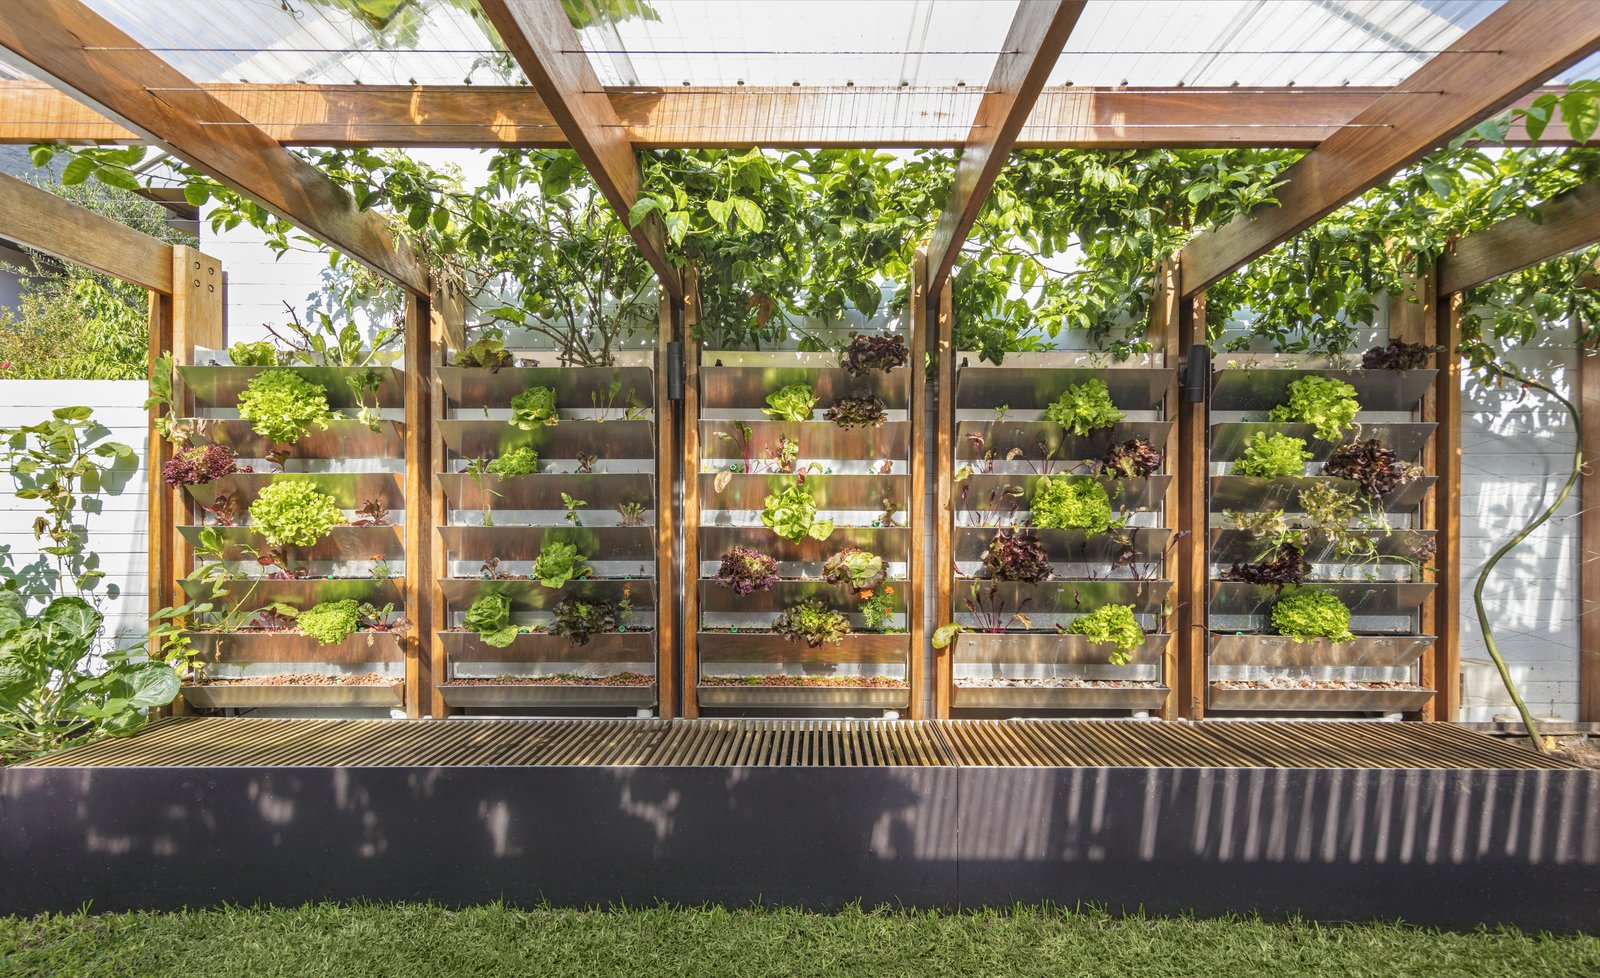 A Sustainable Home Near Sydney Boasts Chicken Coops, Vertical Gardens, And  More